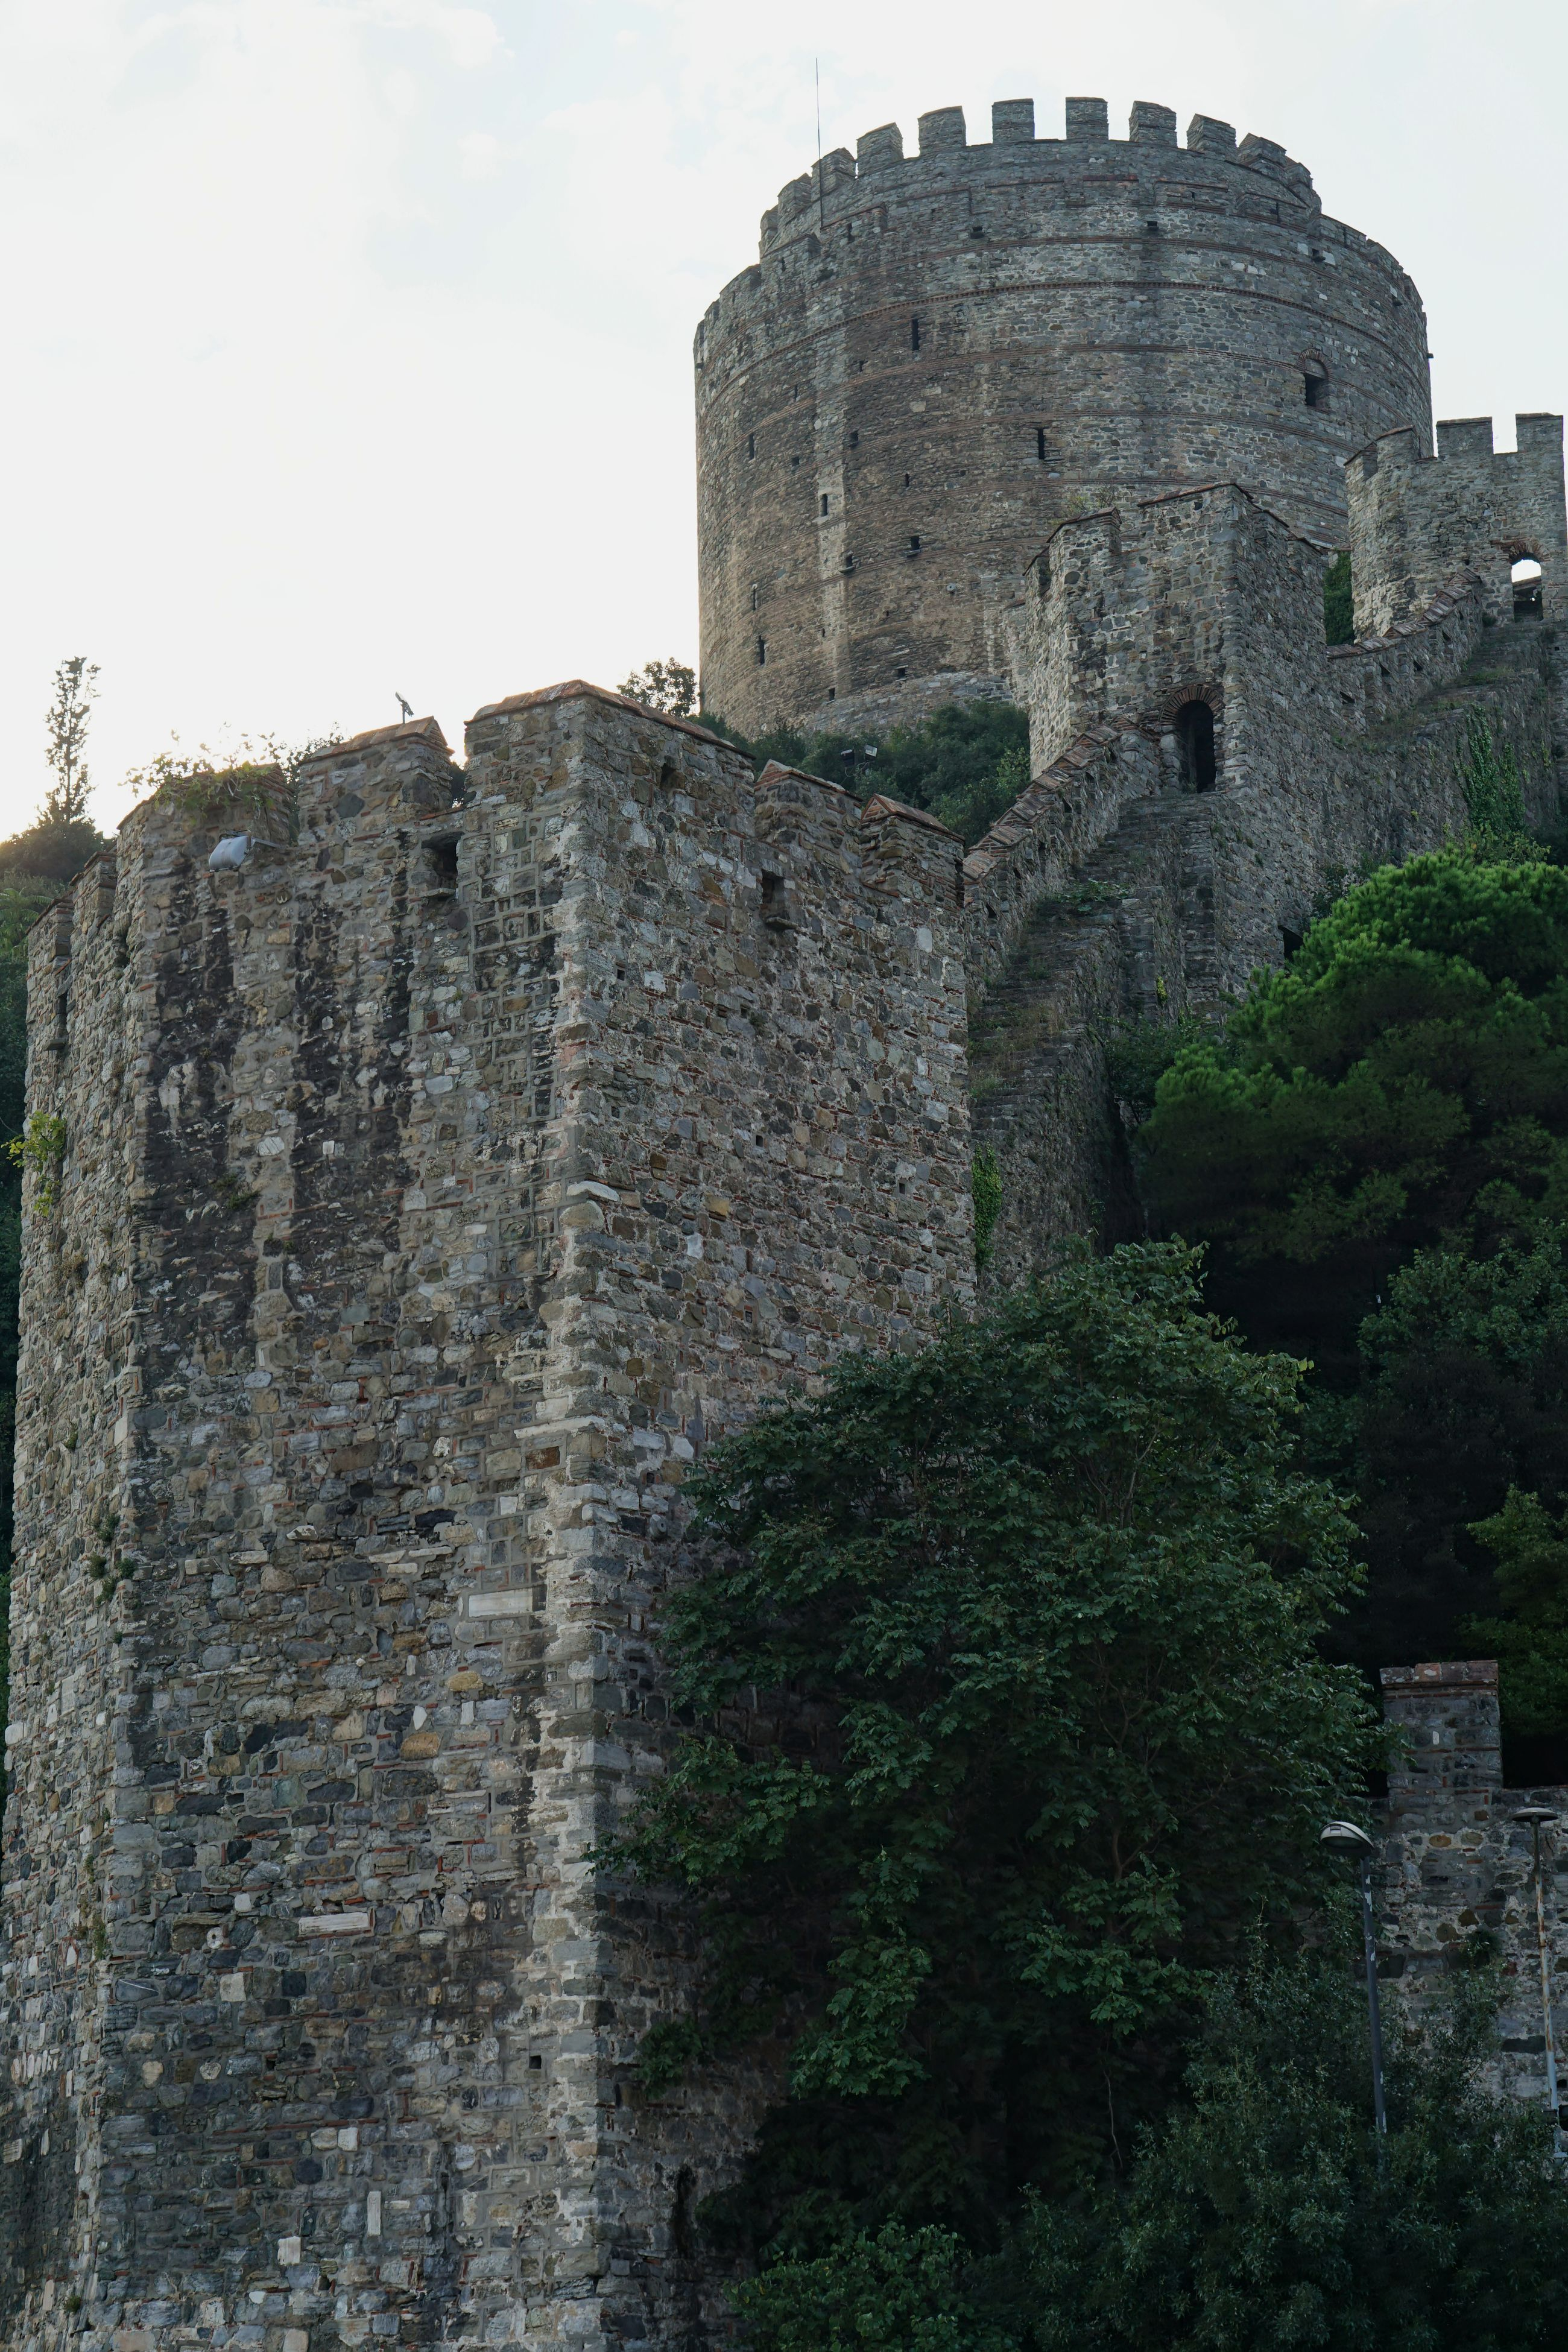 built structure, architecture, history, the past, sky, wall - building feature, building exterior, old ruin, castle, low angle view, rock - object, fort, ruined, weathered, damaged, deterioration, outdoors, fortified wall, stone material, ancient, ancient civilization, medieval, archaeology, tourism, obsolete, cloud - sky